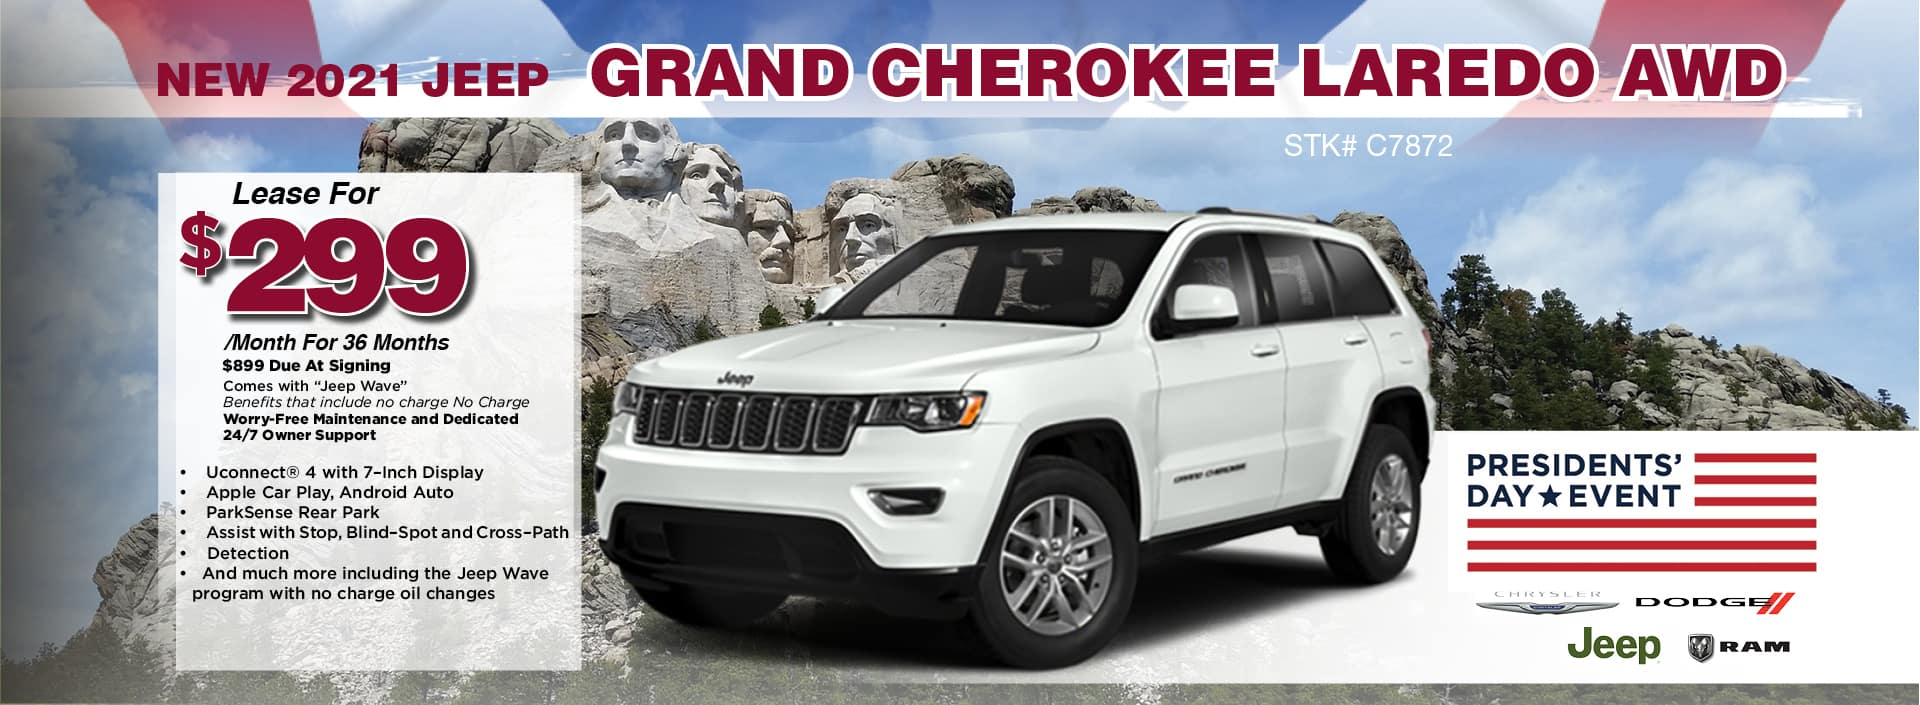 021.397.04_Midstate_1920x705_Cherokee_Dealer Web